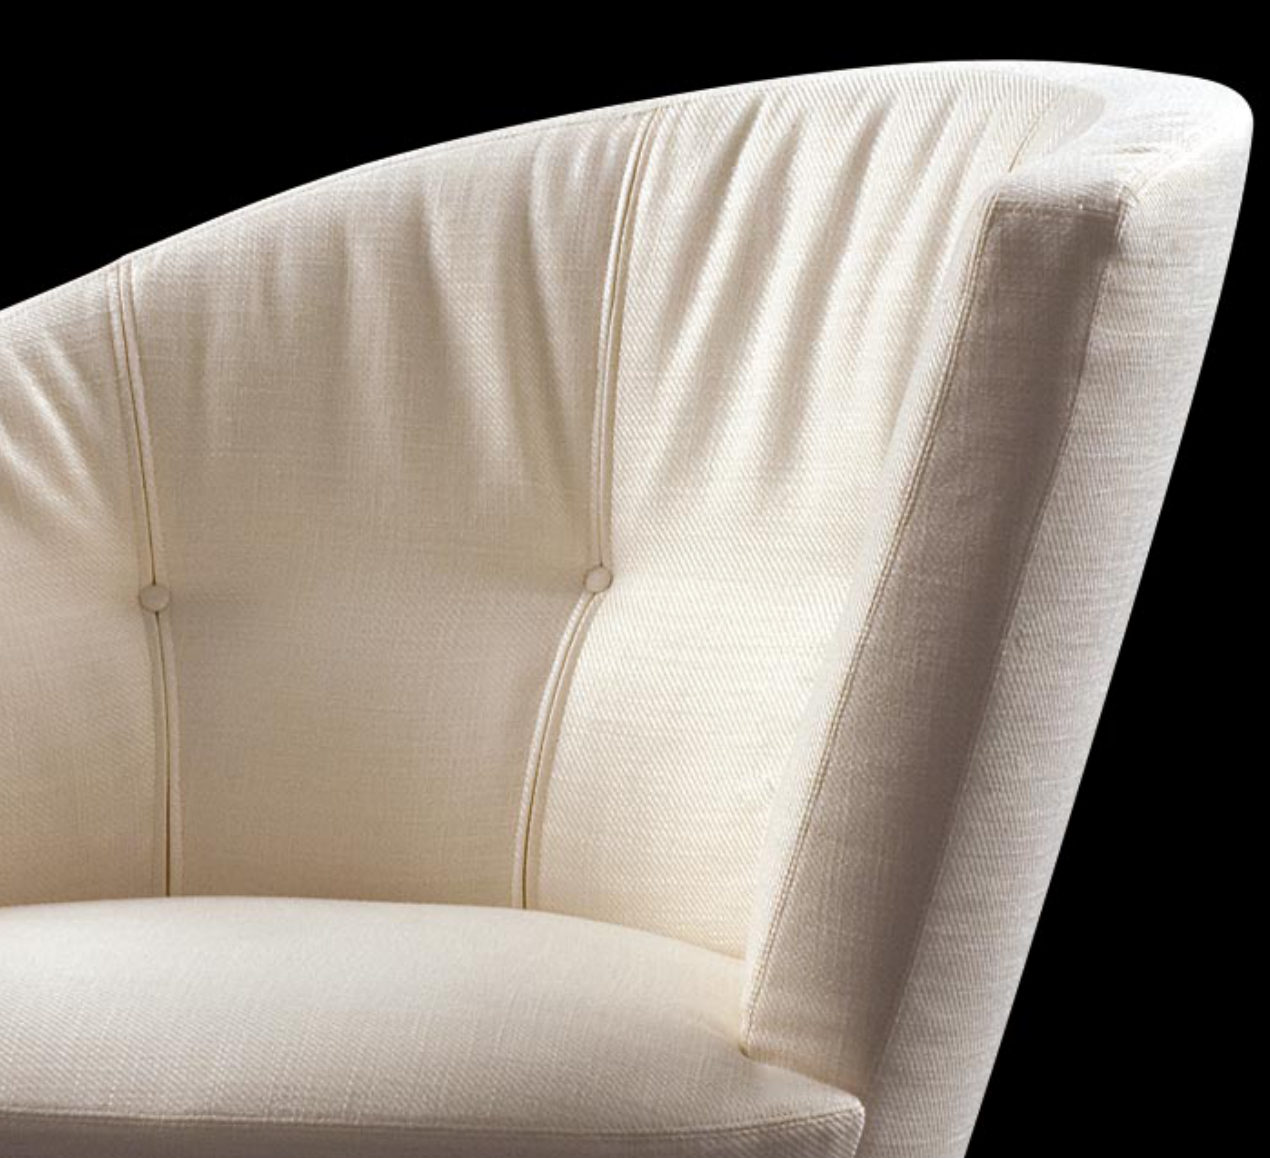 Arabella by Giorgetti - best office chair! Click here to see and read more: http://www.katbern.com/have-a-seat-baby